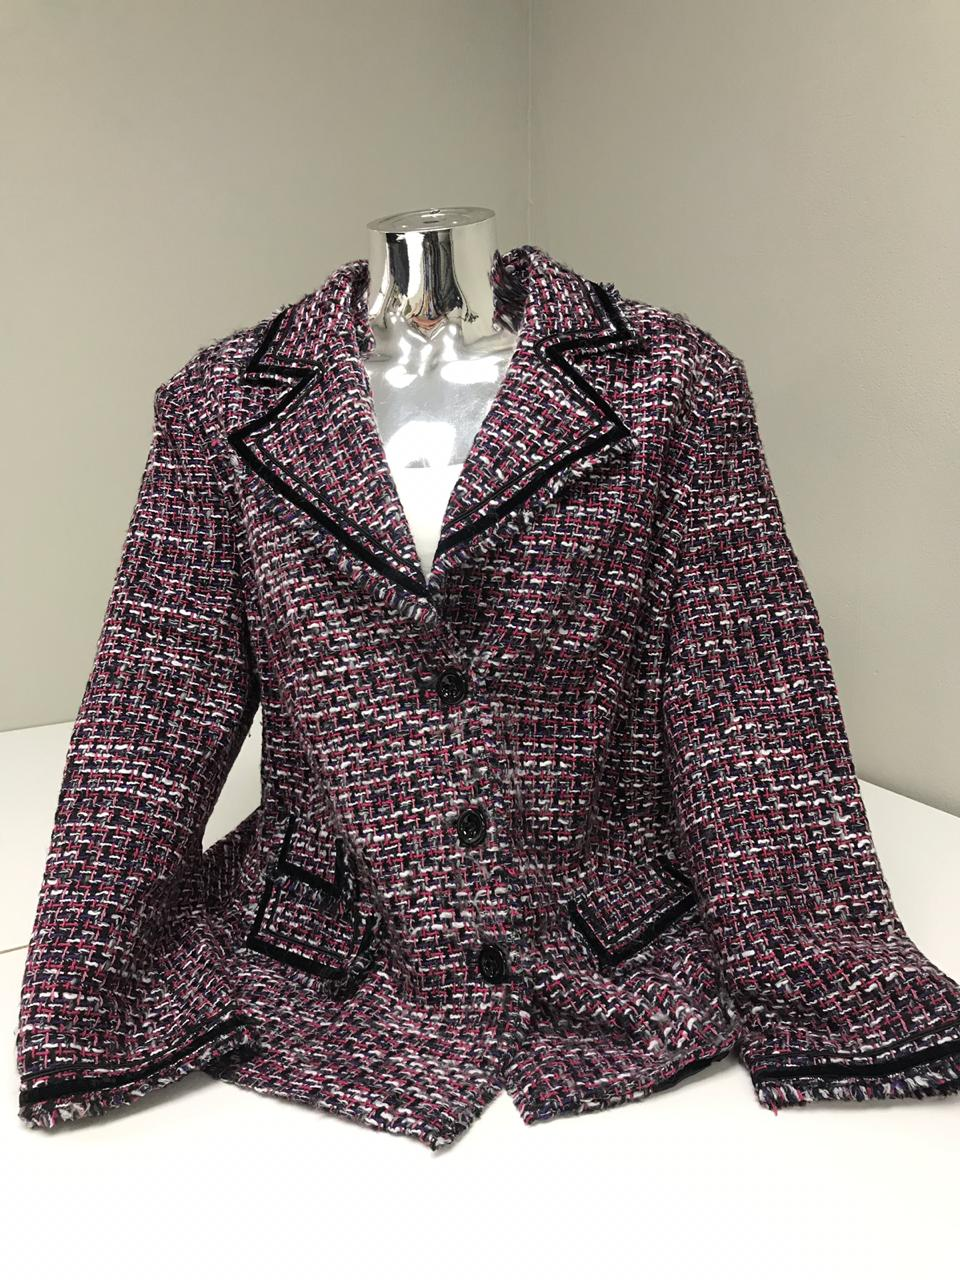 100-piece ladies' wool jackets bale for only R3990. Buy a bale. Make your own cash.